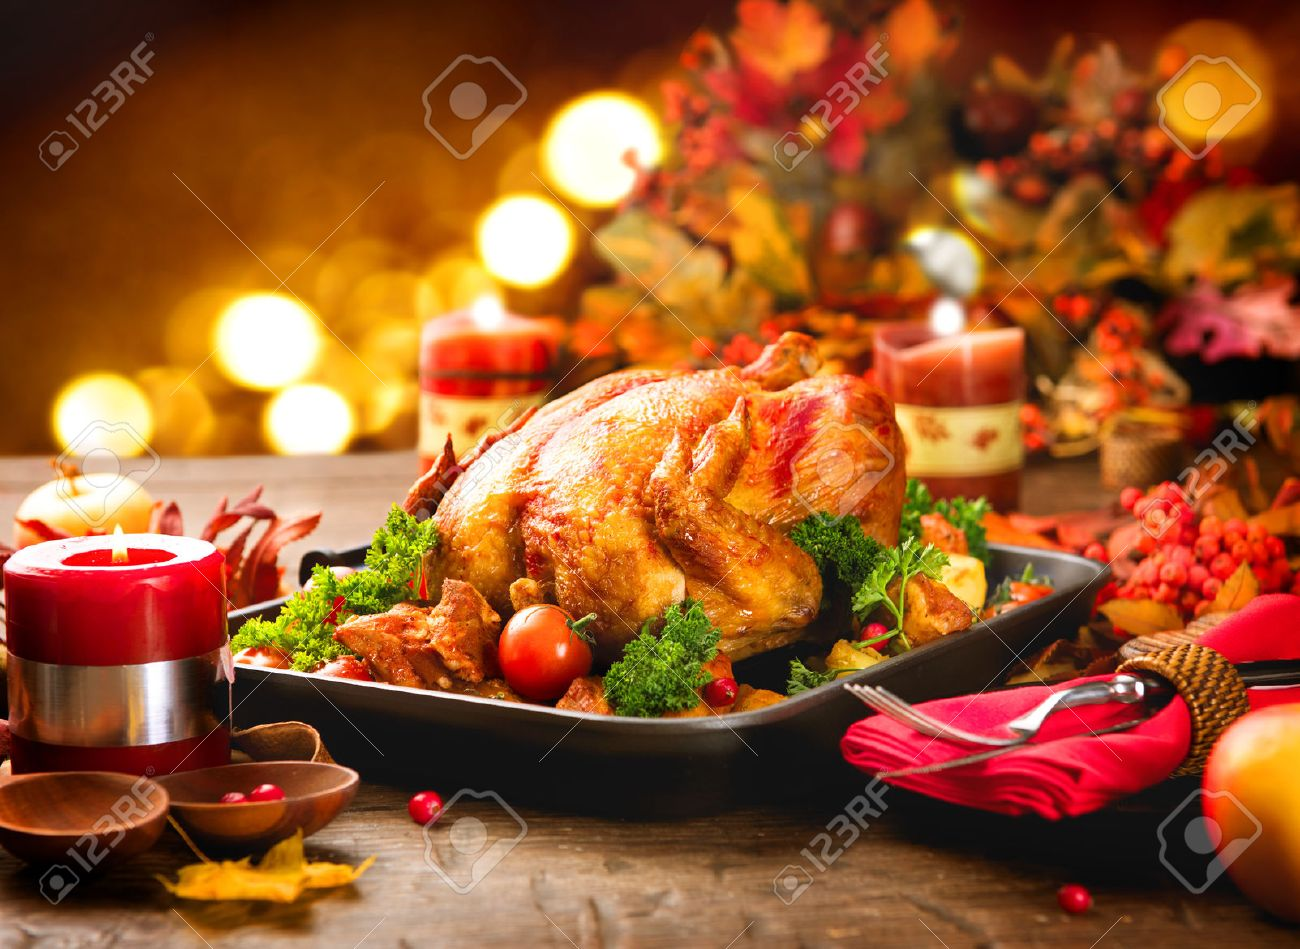 Dinner table with food - Dinner Food Thanksgiving Dinner Table Served With Turkey Decorated With Bright Autumn Leaves